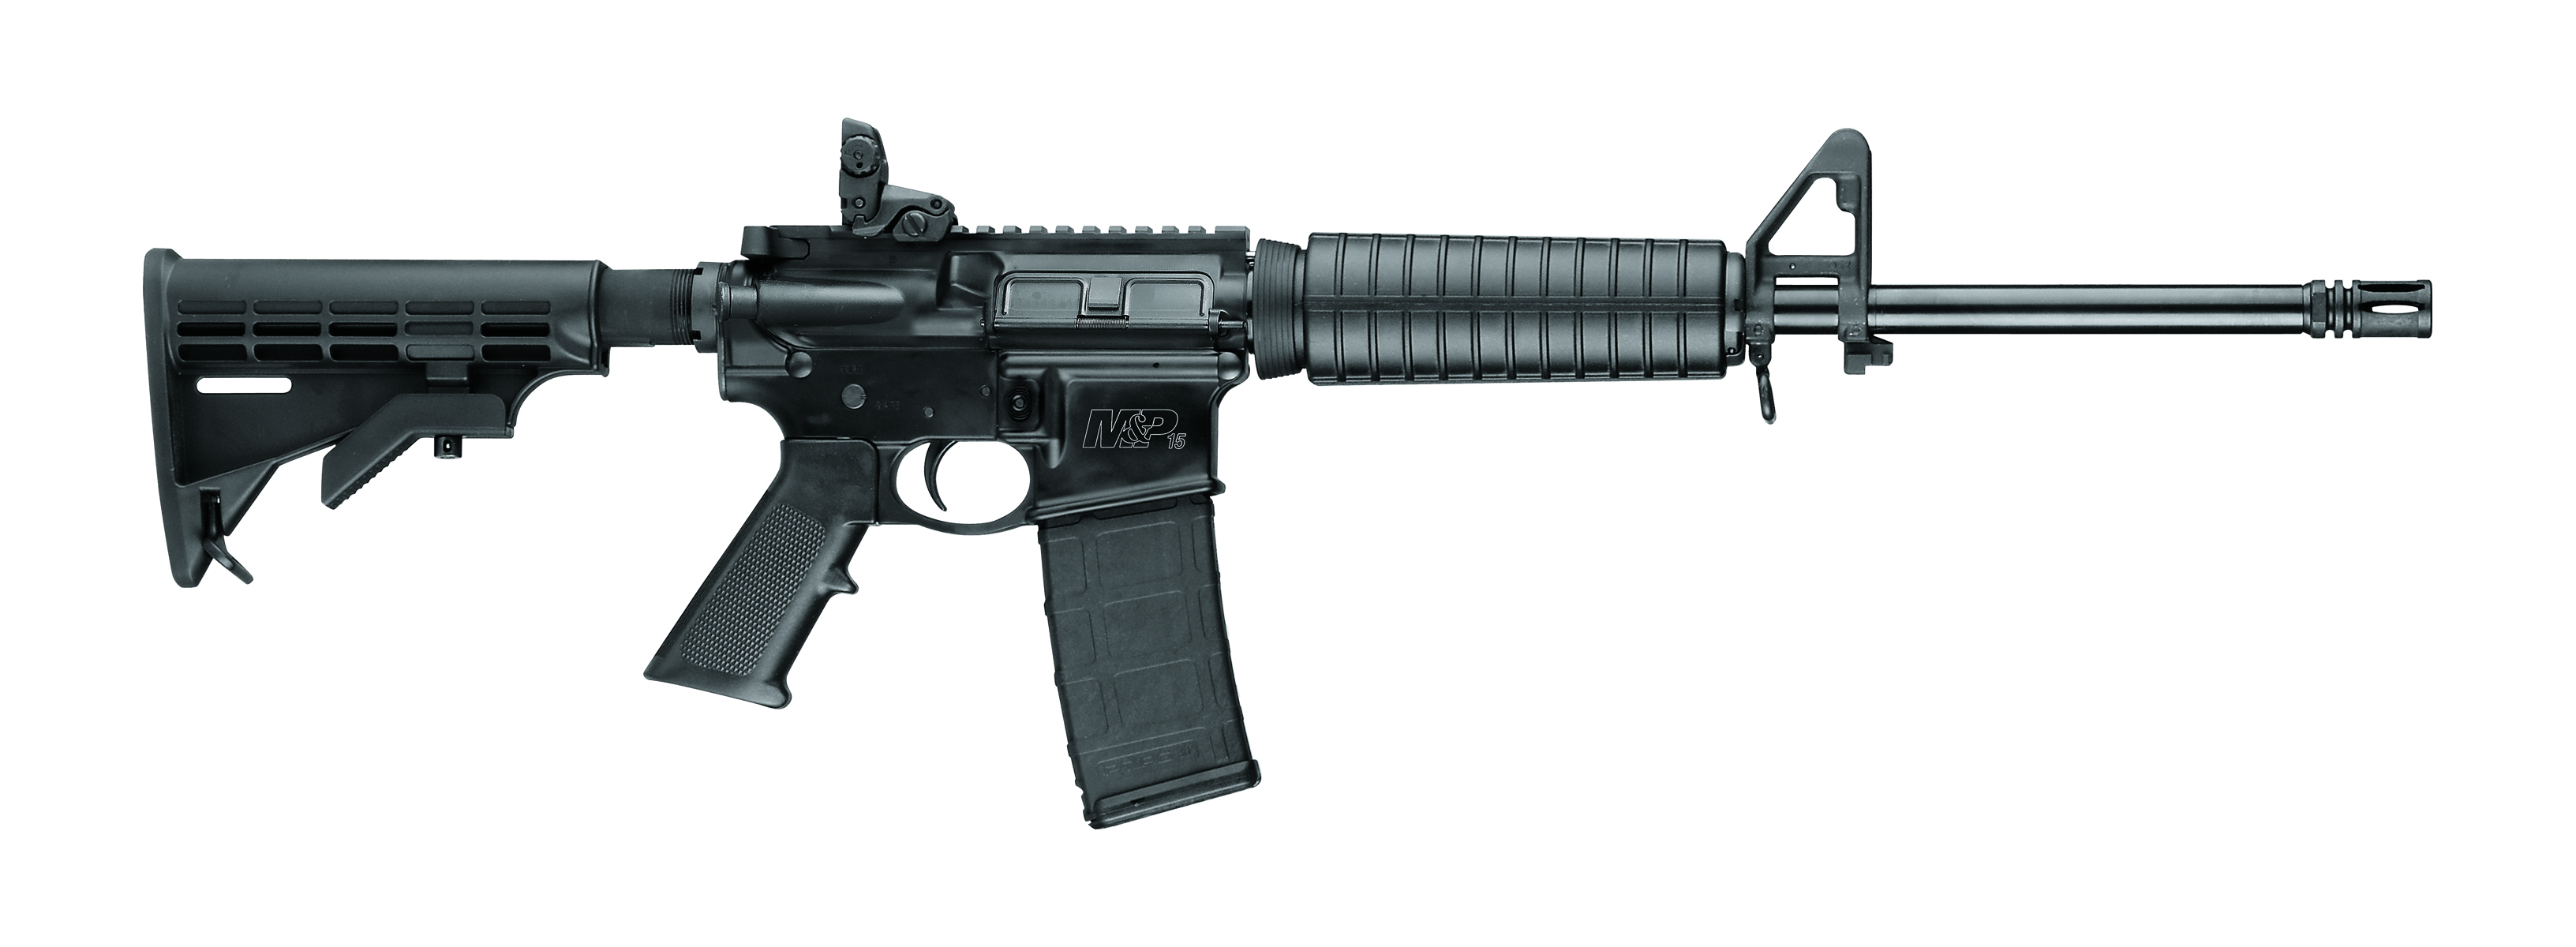 Smith & Wesson M&P15 Sport II 5.56 Rifle 10202_R